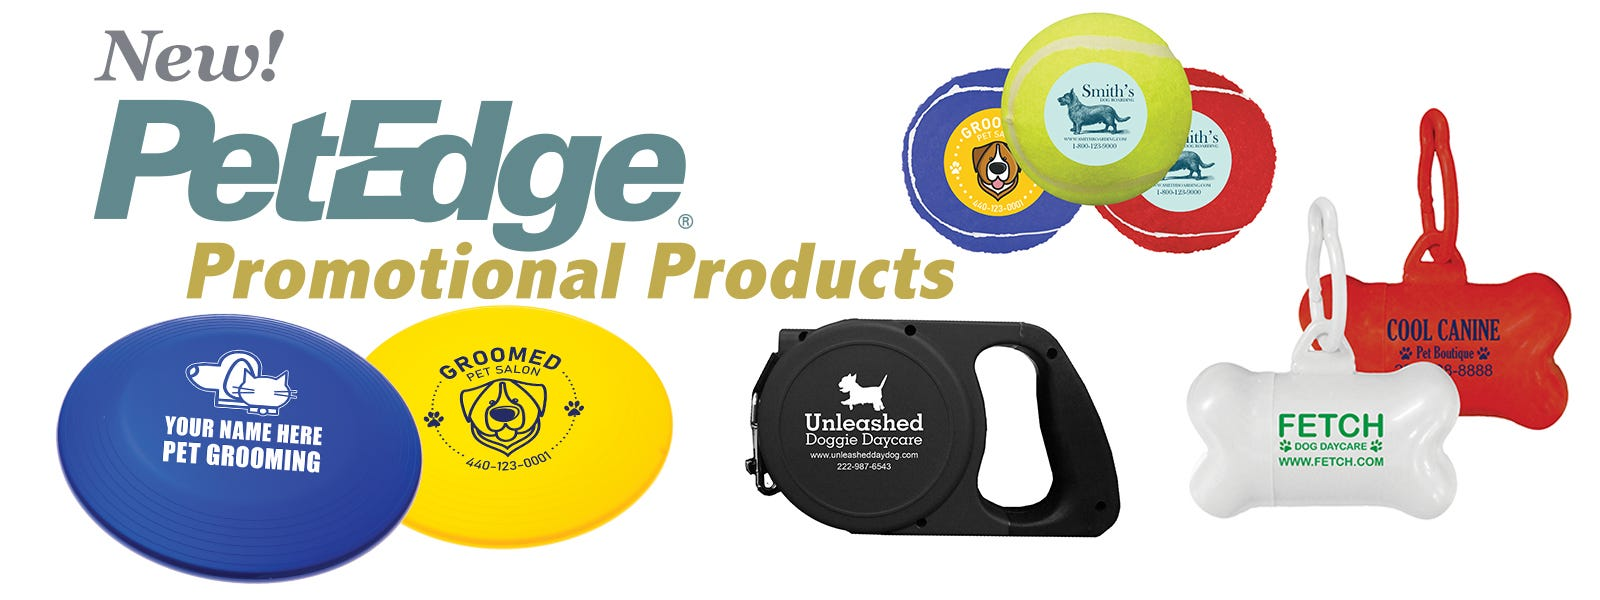 New PetEdge Promotional Products!